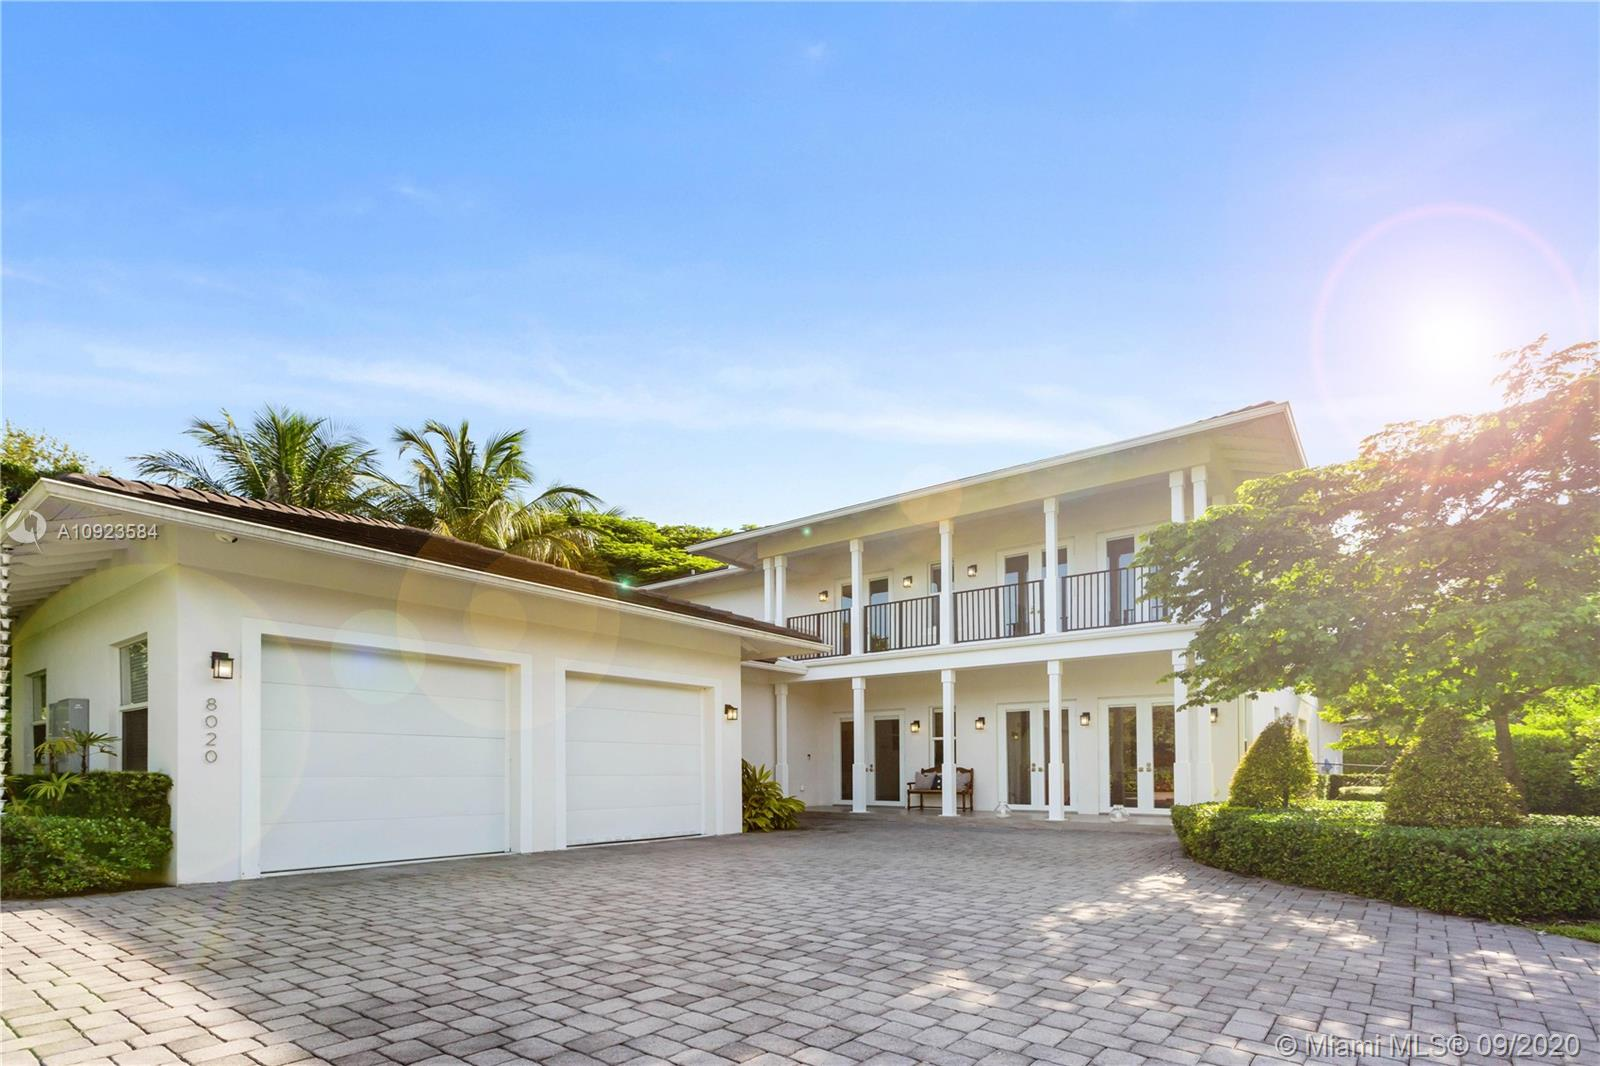 Details for 8020 109th Ter, Miami, FL 33156